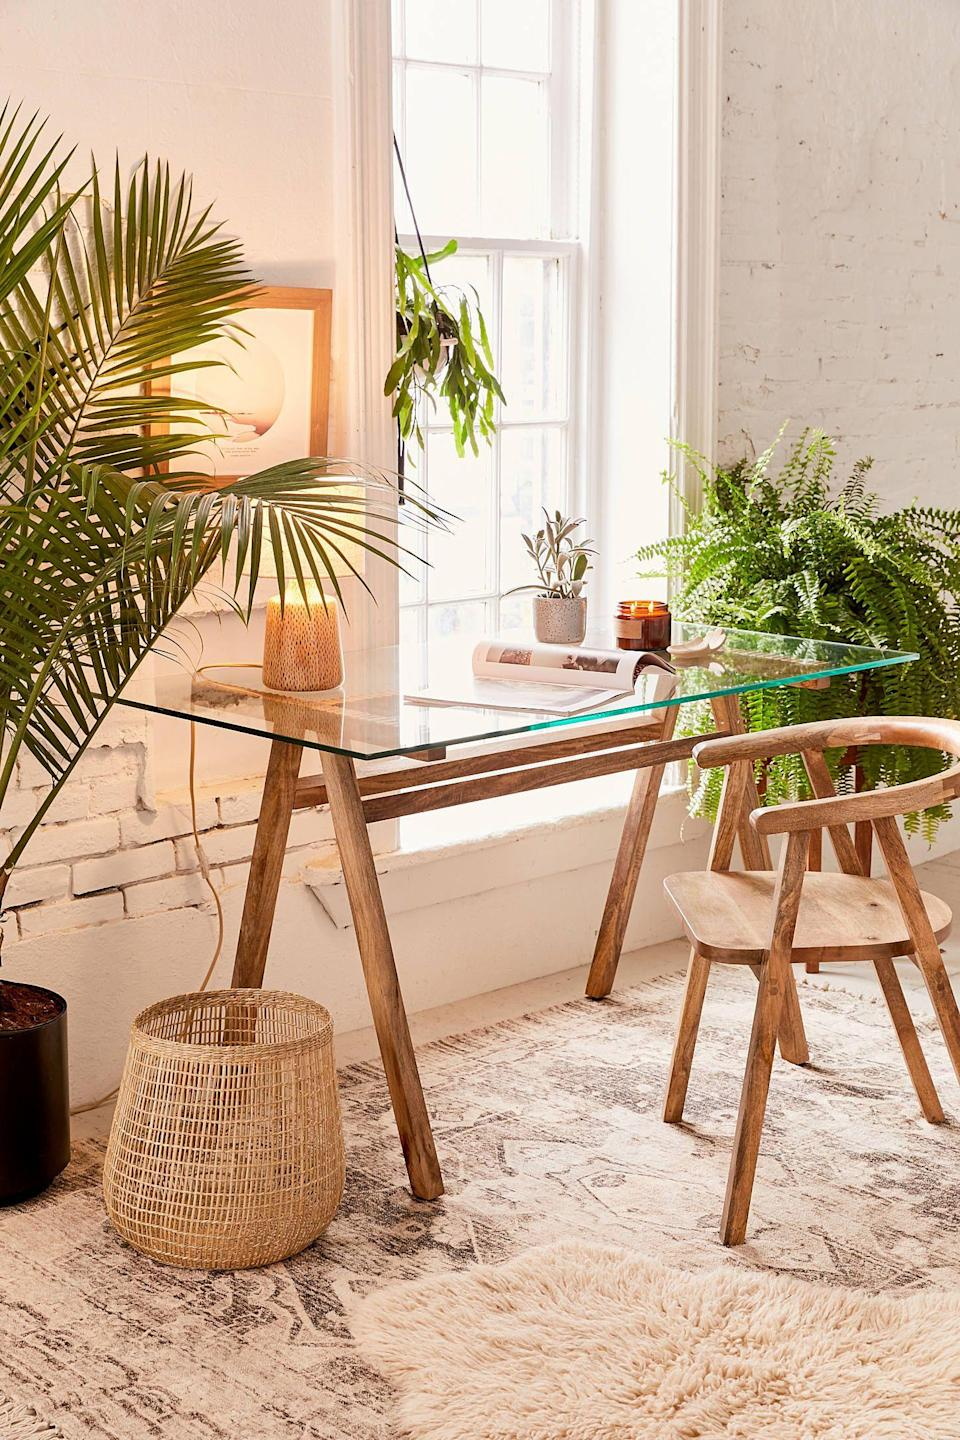 """<p><strong>Urban Outfitters</strong></p><p>urbanoutfitters.com</p><p><strong>$349.00</strong></p><p><a href=""""https://go.redirectingat.com?id=74968X1596630&url=https%3A%2F%2Fwww.urbanoutfitters.com%2Fshop%2Fashford-desk&sref=https%3A%2F%2Fwww.countryliving.com%2Fhome-design%2Fdecorating-ideas%2Fg29307726%2Fdesks-for-small-spaces%2F"""" rel=""""nofollow noopener"""" target=""""_blank"""" data-ylk=""""slk:Shop Now"""" class=""""link rapid-noclick-resp"""">Shop Now</a></p><p>The glass top isn't visually heavy, which ensures your place will not feel cluttered. </p>"""